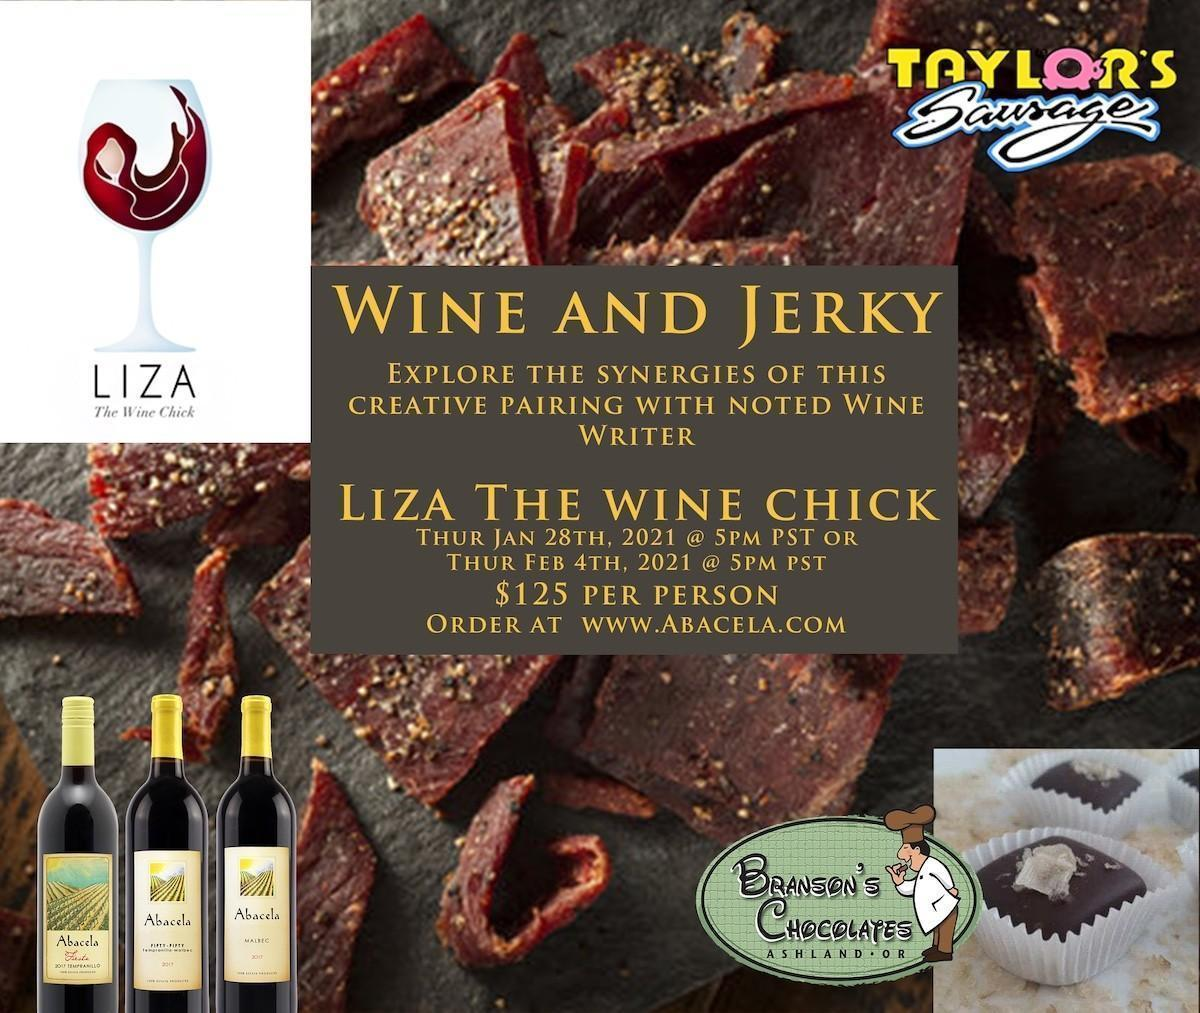 liza wine chick abacela jerky poster 2021 - Southern Oregon Wine and Artisanal Jerky with Liza the Wine Chick